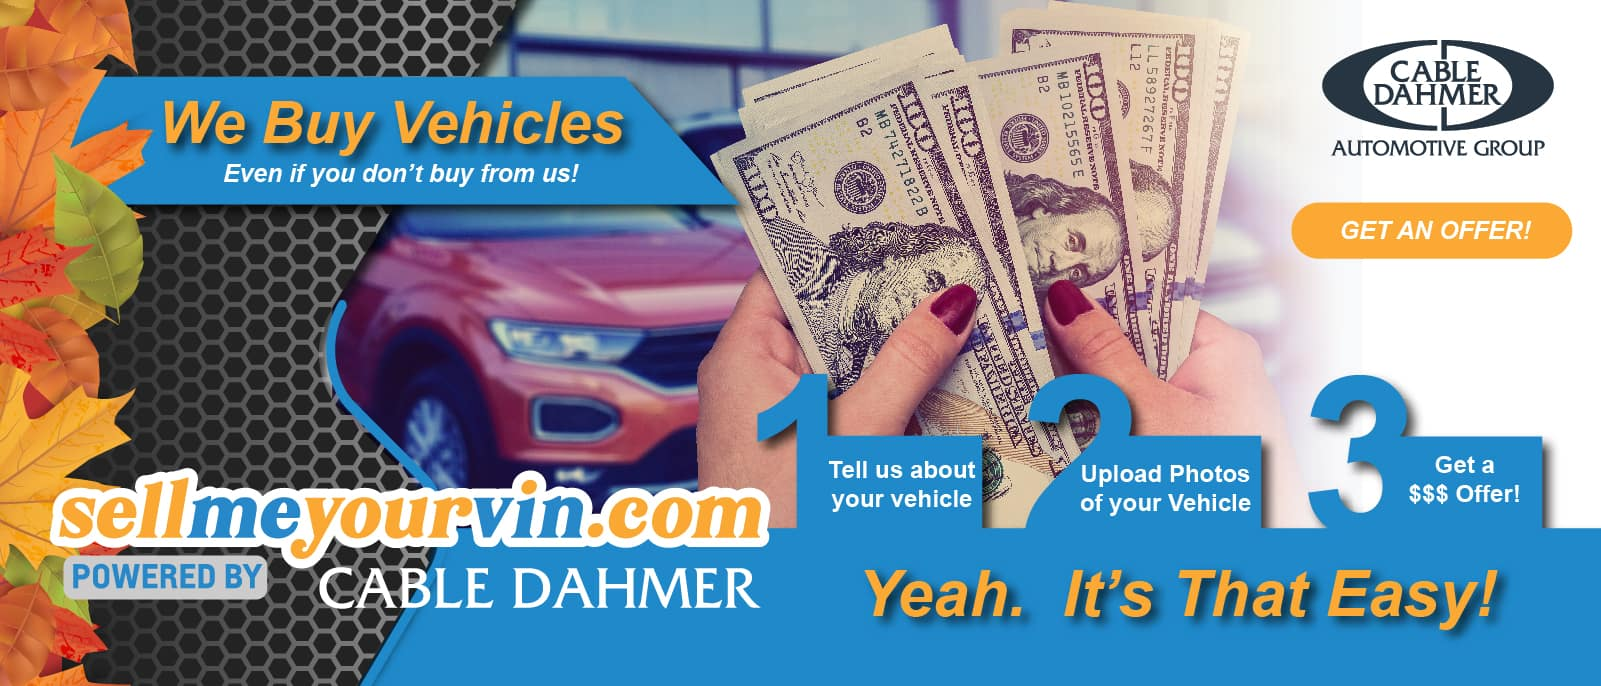 Cable Dahmer – Marketing-New website Rotators – fall – ALL_Website Rotator – Sell me your vin